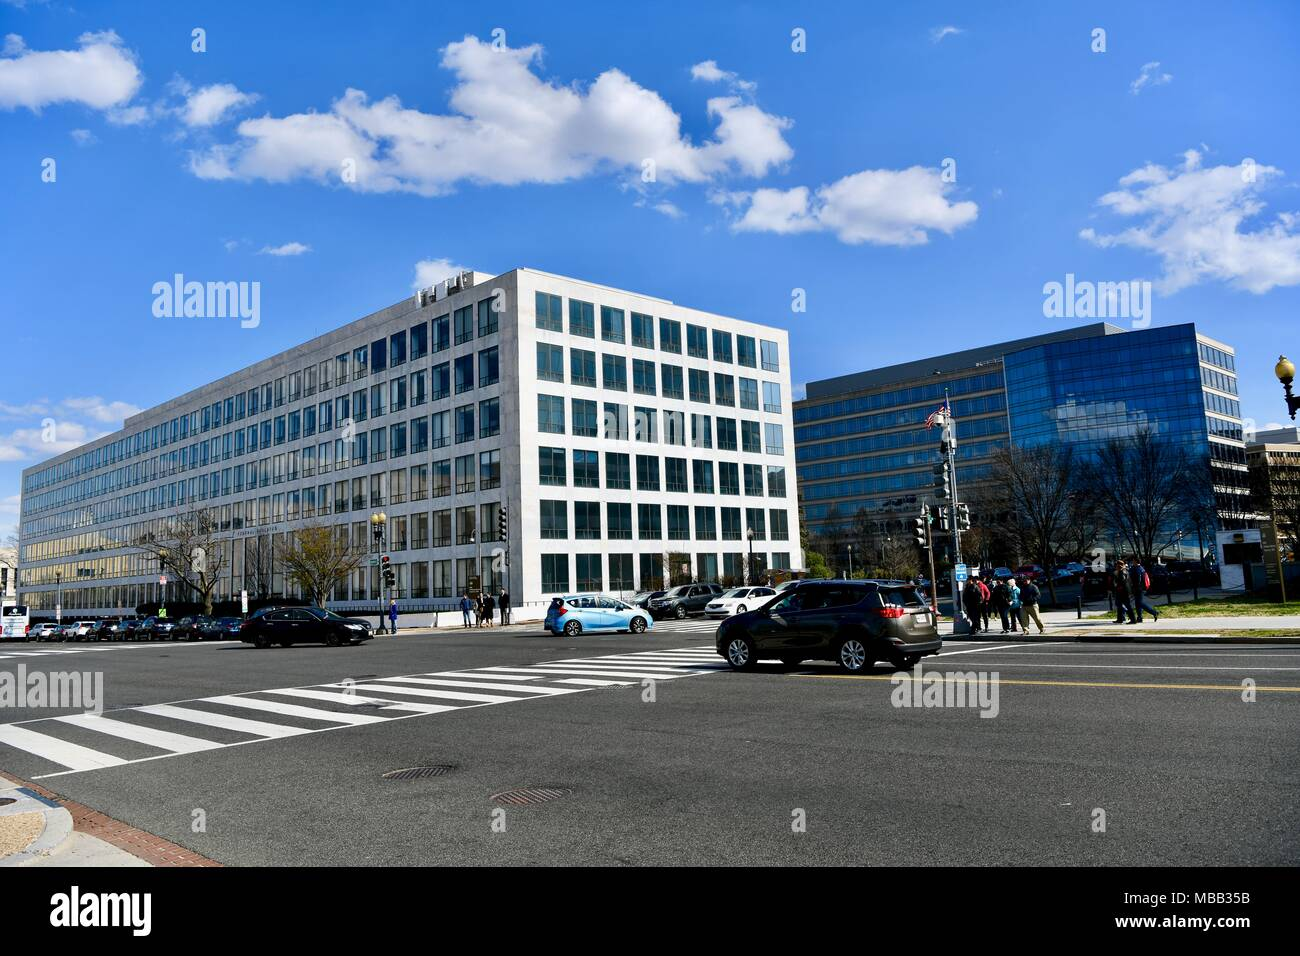 Department of Transportation Federal Aviation Administration Orville Wright Building in Washington DC, USA - Stock Image